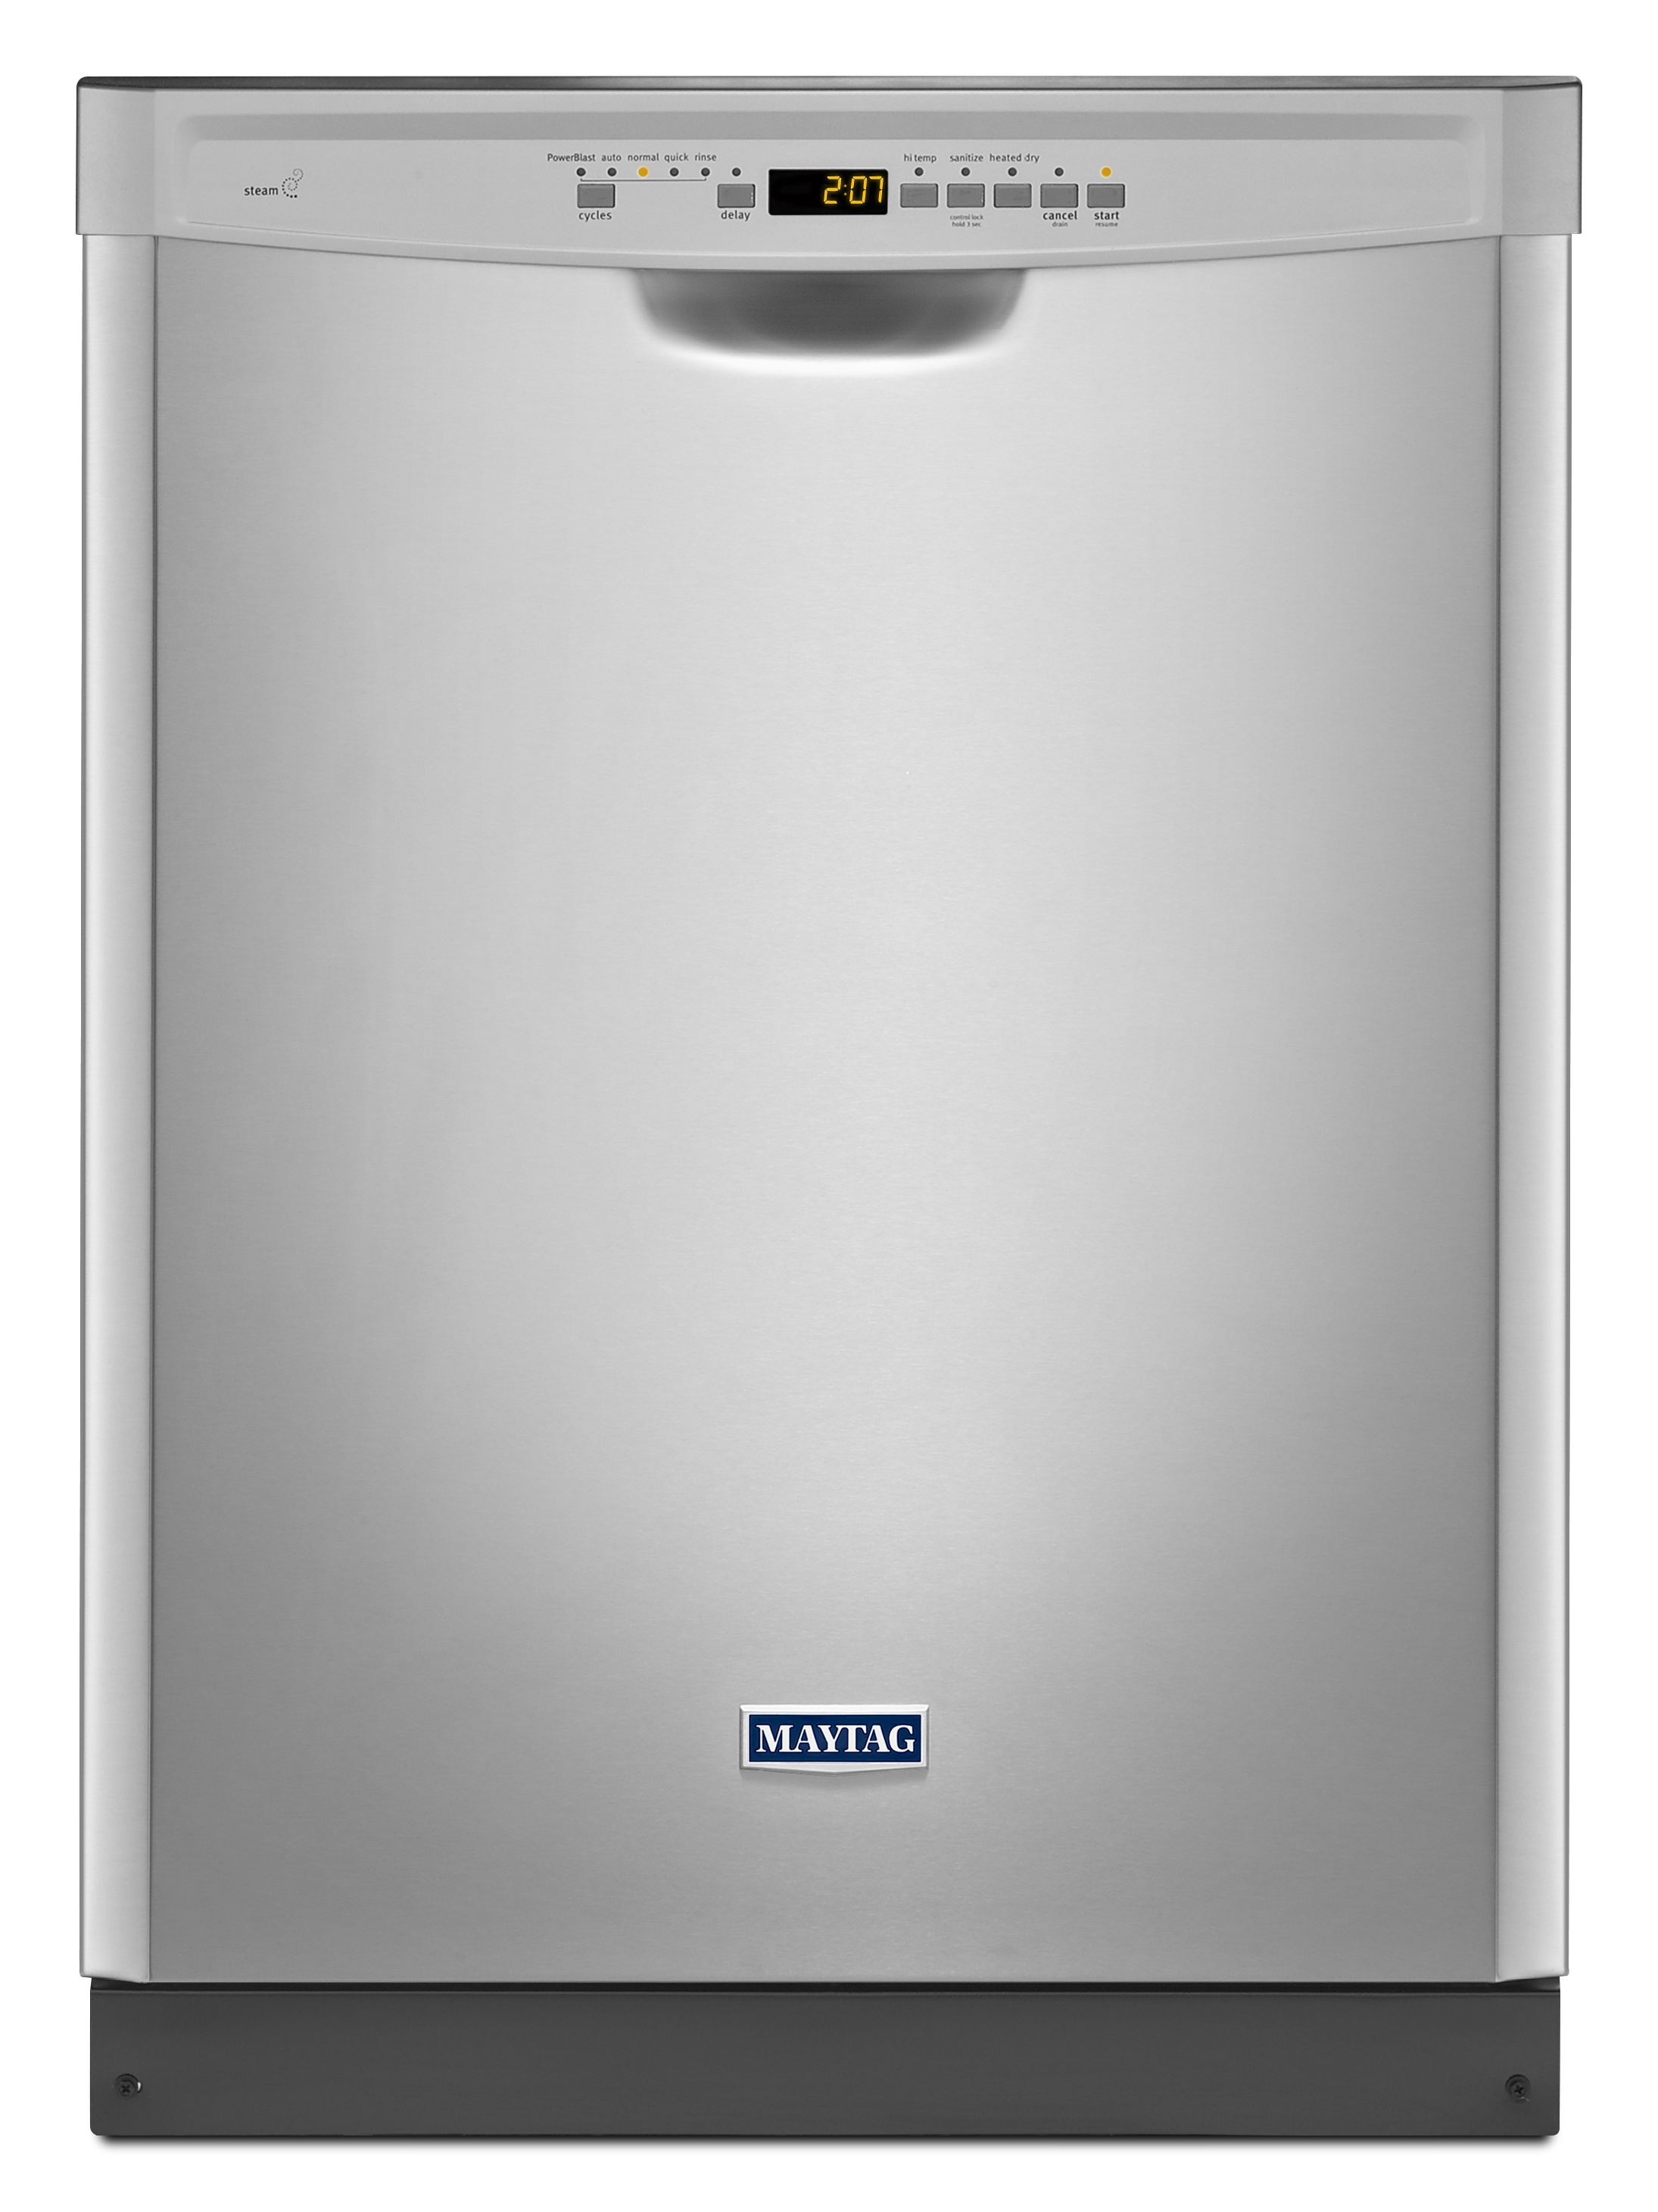 "Maytag MDB4949SDZ 24"""" Built-In Large Capactiy Dishwasher with Stainless Steel Tub - Fingerprint Resistant Stainless Steel"